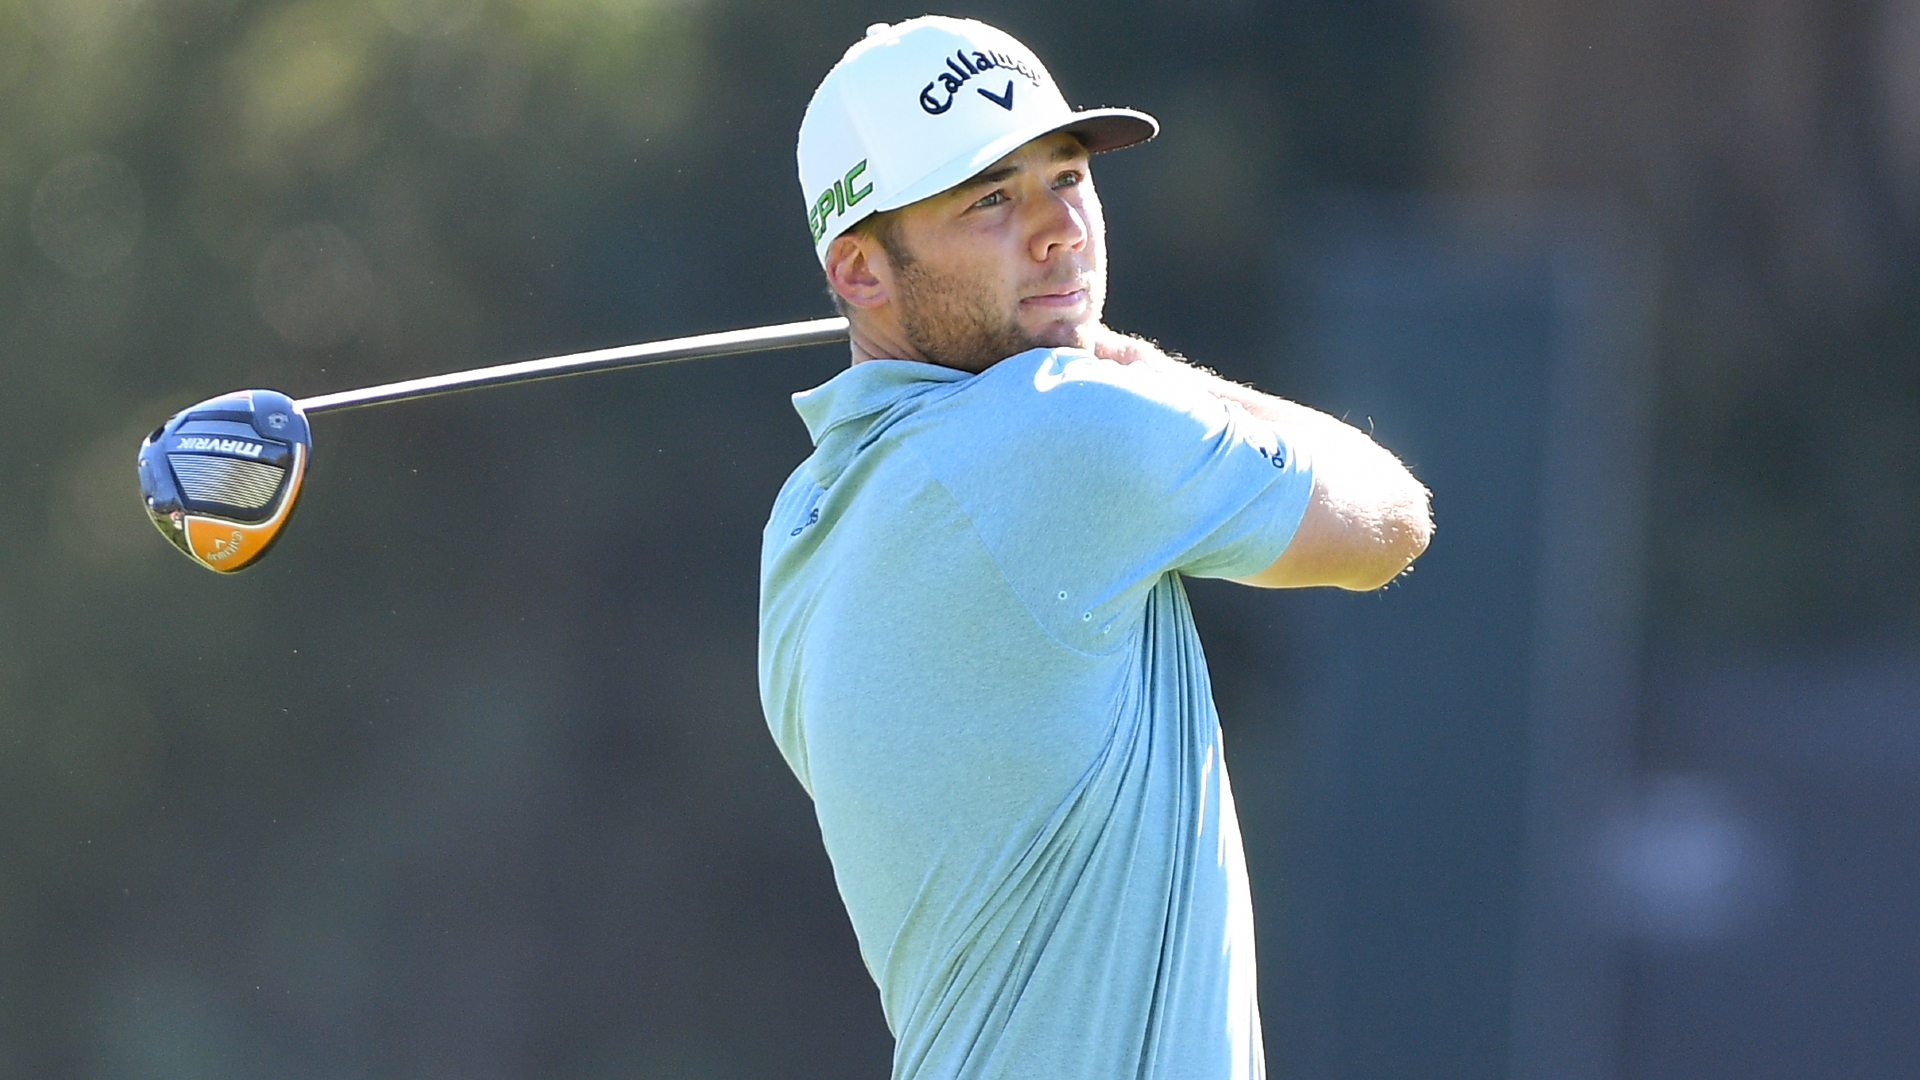 Burns pulls clear as Johnson chases, McIlroy misses cut